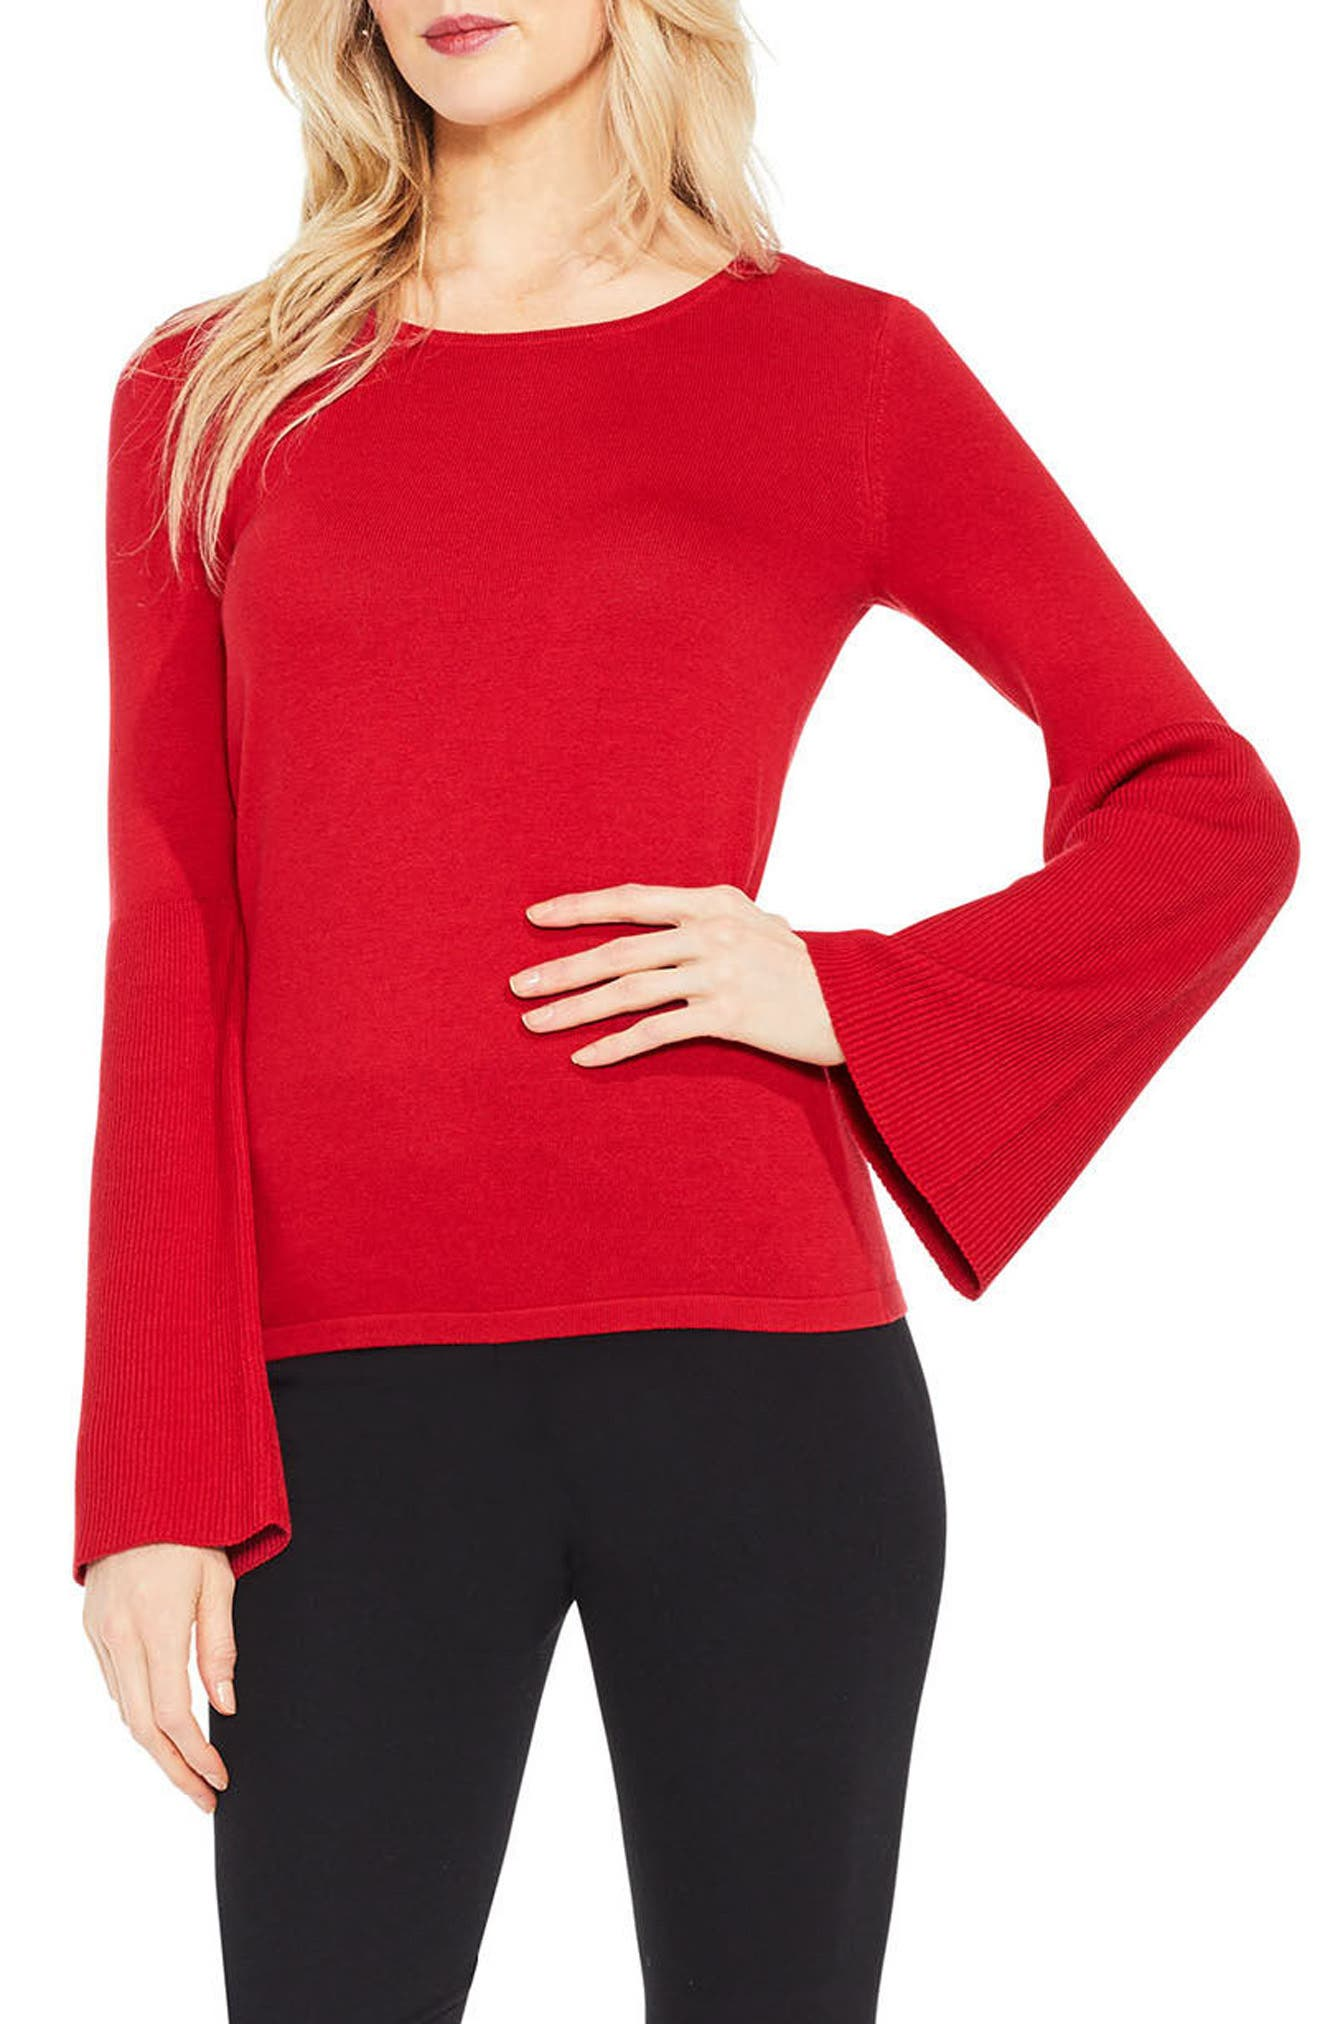 Alternate Image 1 Selected - Vince Camuto Ribbed Bell Sleeve Sweater (Regular & Petite)